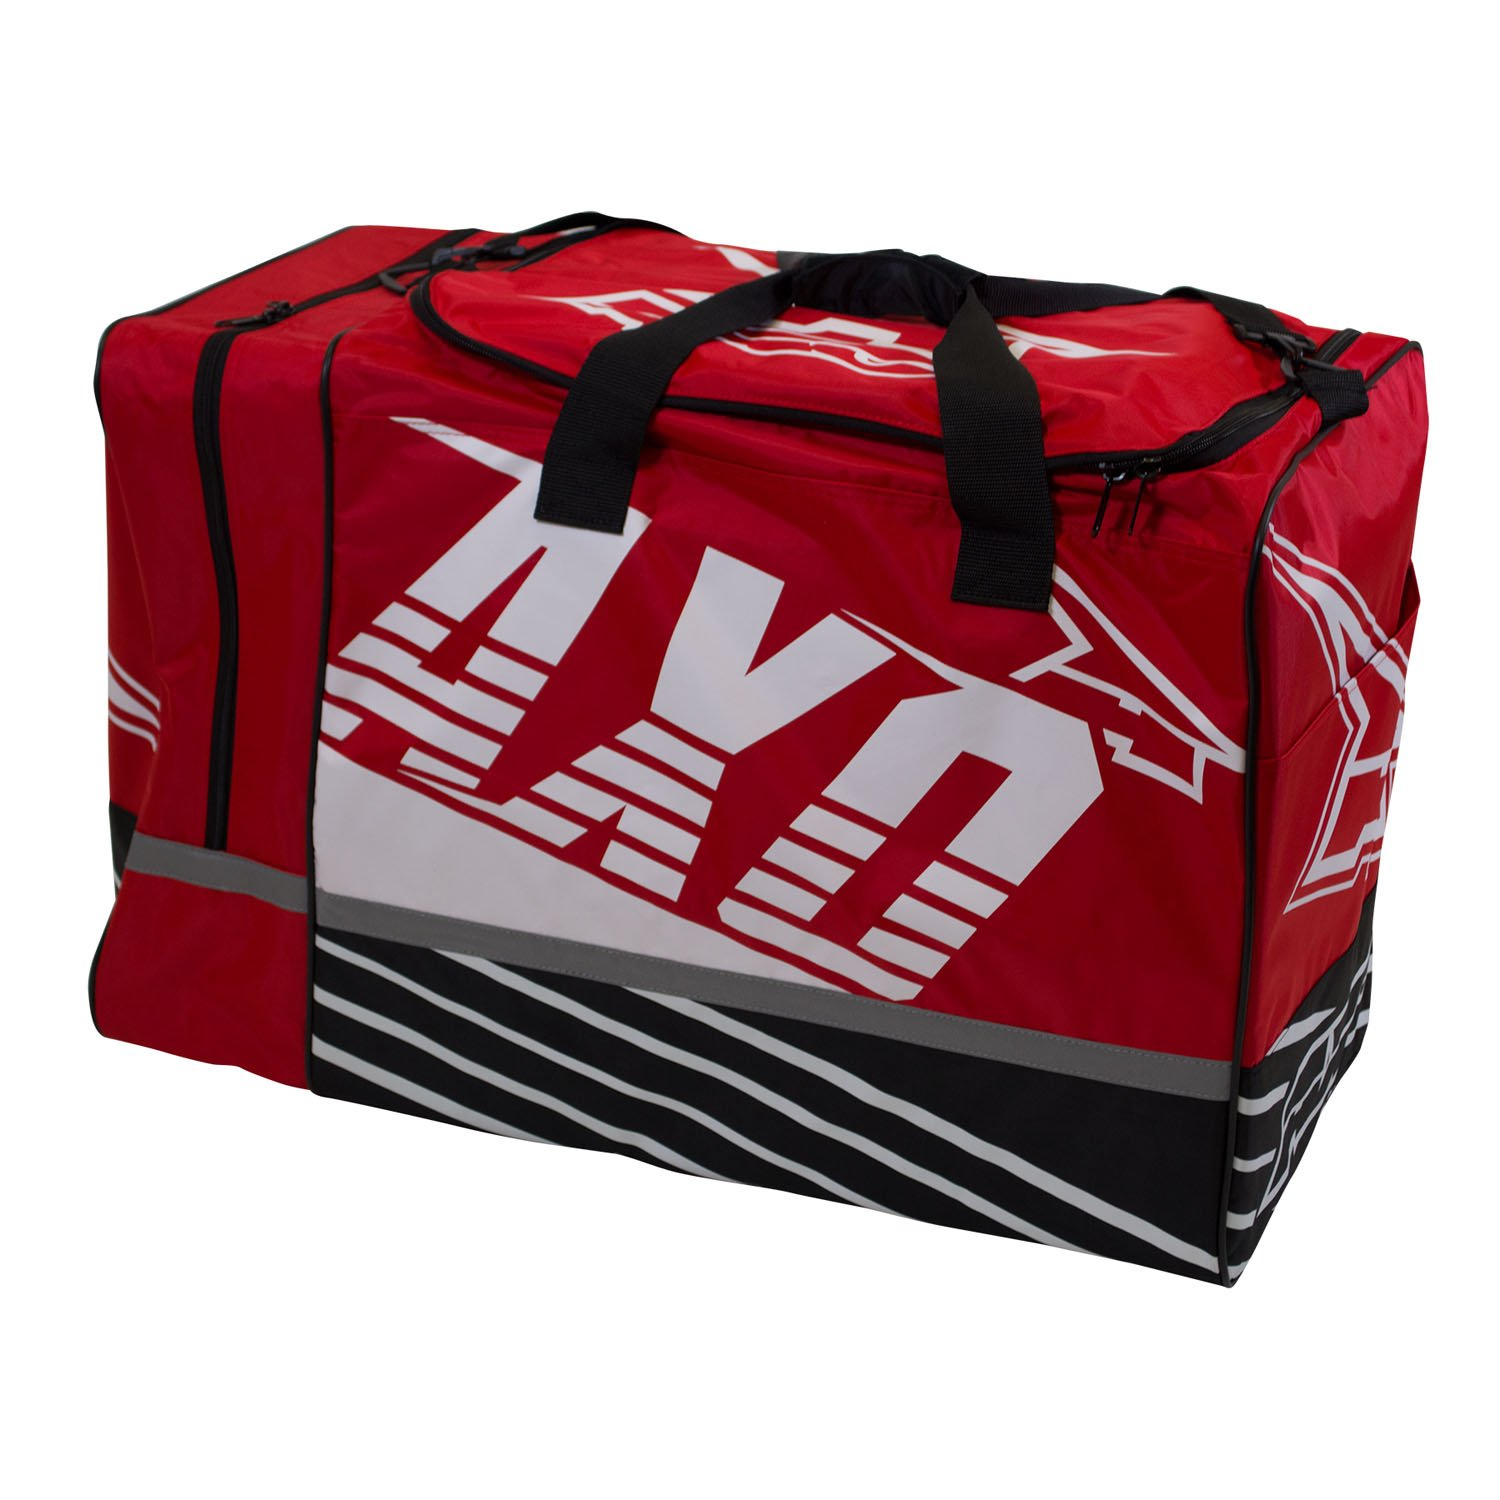 AXO 29202-25-000 Weekender Red//Black Gear Bag